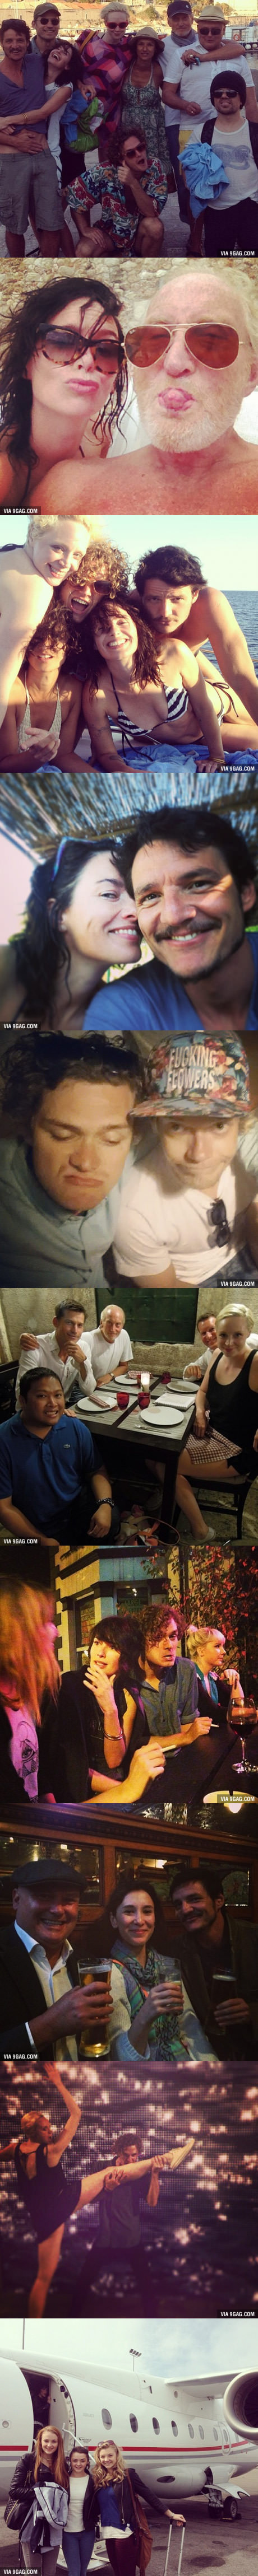 game of thrones cast vacation - photo #29